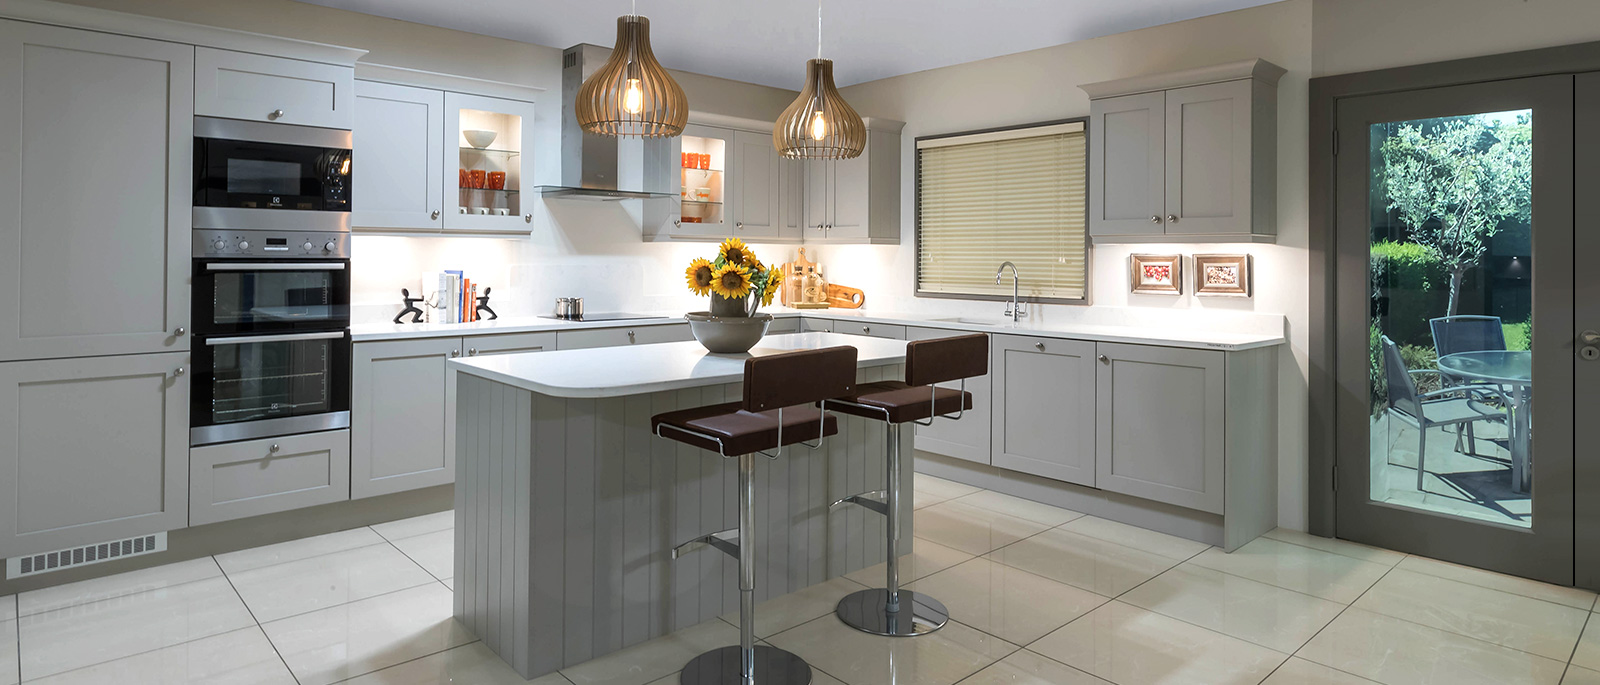 Fitted Kitchen Designs Kitchen Design Wilmslow Harwood Bespoke Fitted Kitchen Design In